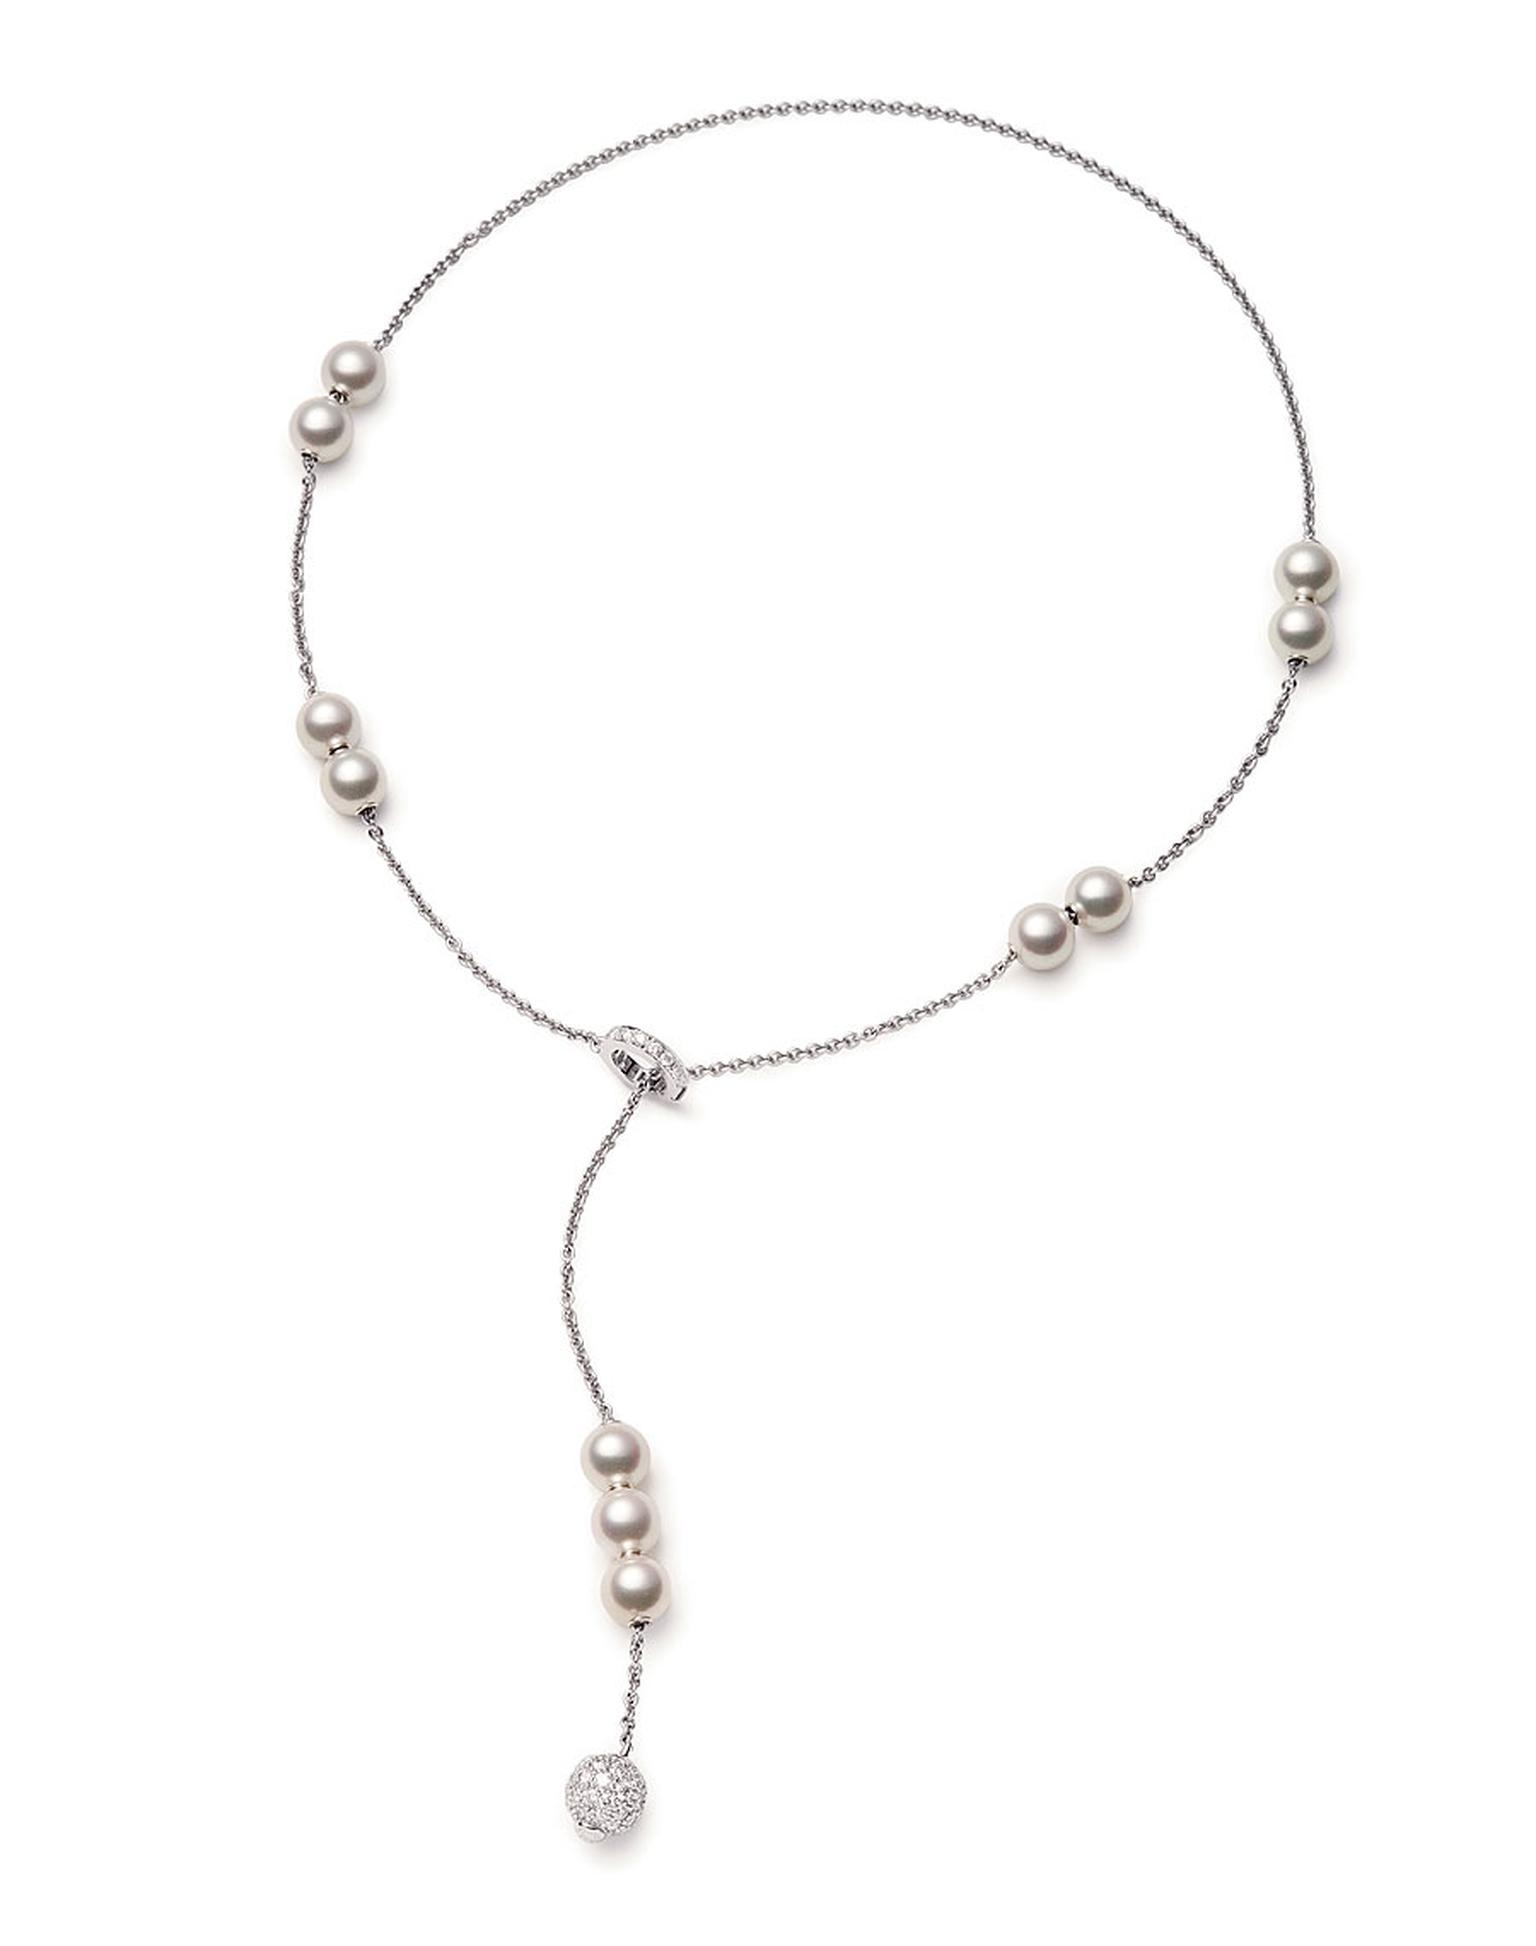 Mikimoto Akoya pearls in motion necklace. Akoya pearls, diamonds and white gold 2,500